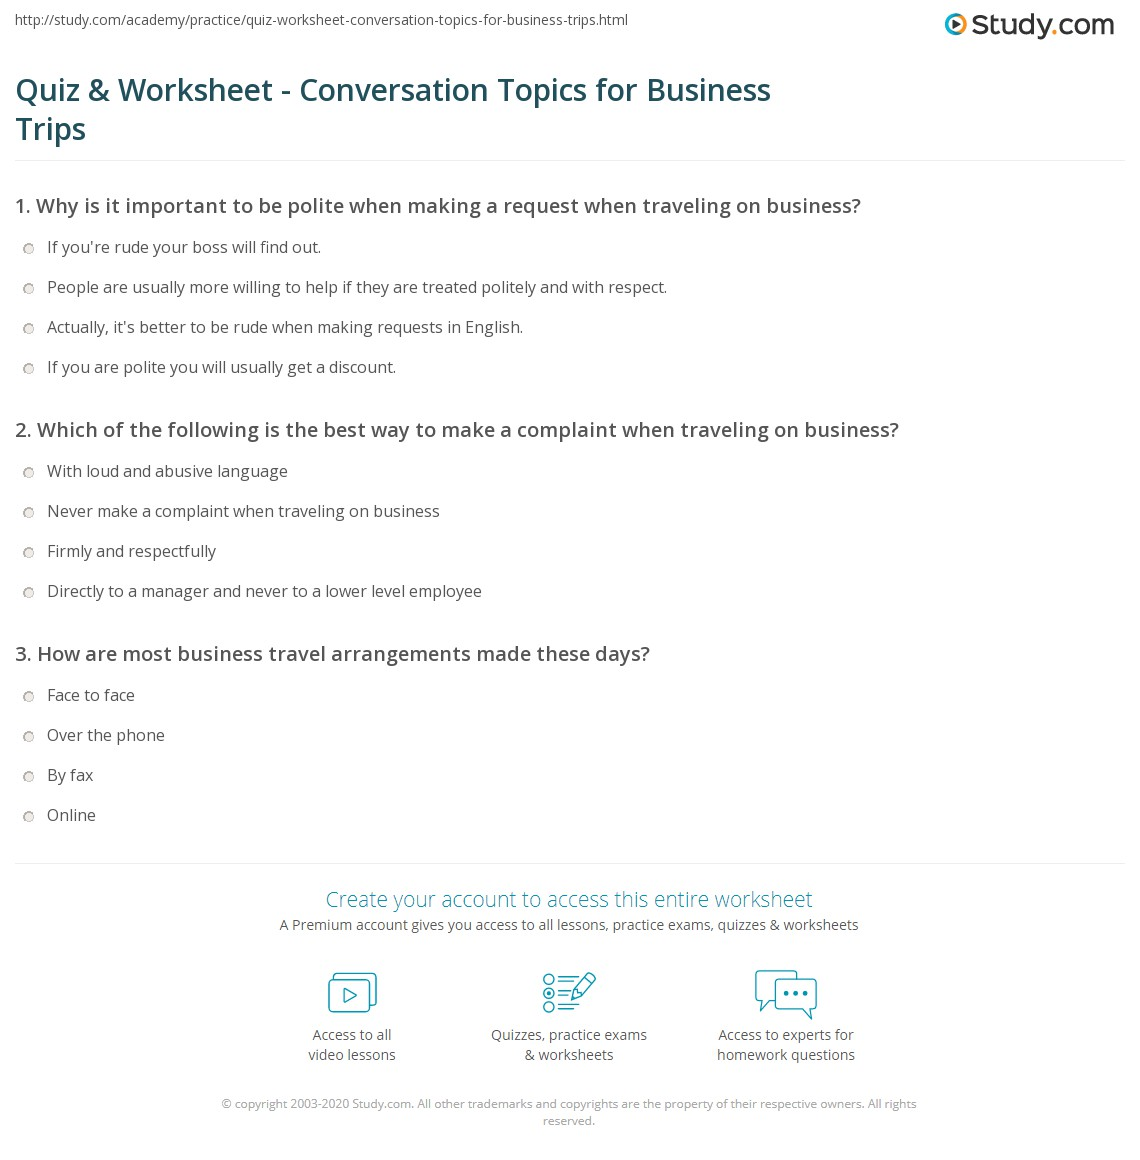 Business Travel Worksheet : Quiz worksheet conversation topics for business trips